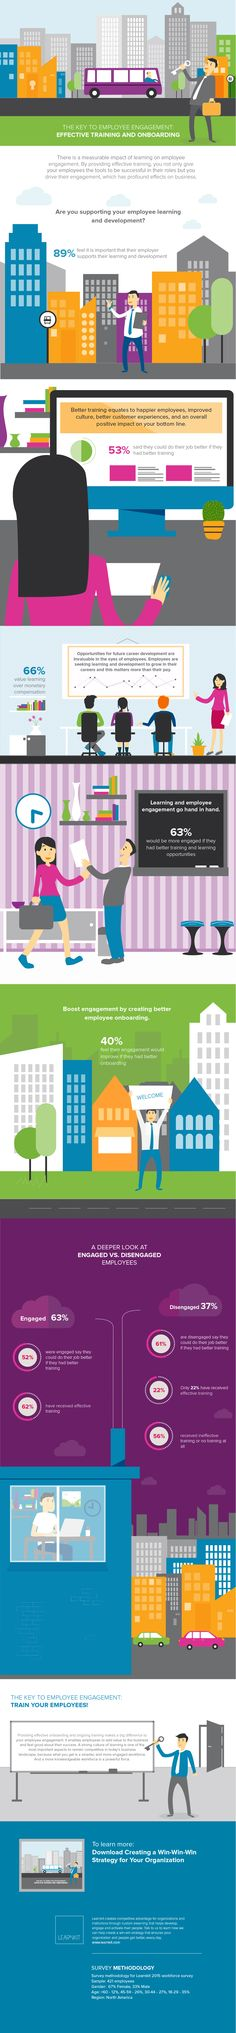 """Why does employee engagement matter? Research shows that business success is driven by engaged employees, employees who are committed to the organizations they work for and are """"all in. Employee Engagement, Engagement Ideas, Social Business, Career Education, Human Resources, Digital Marketing, Social Media, Business Infographics, Poster"""